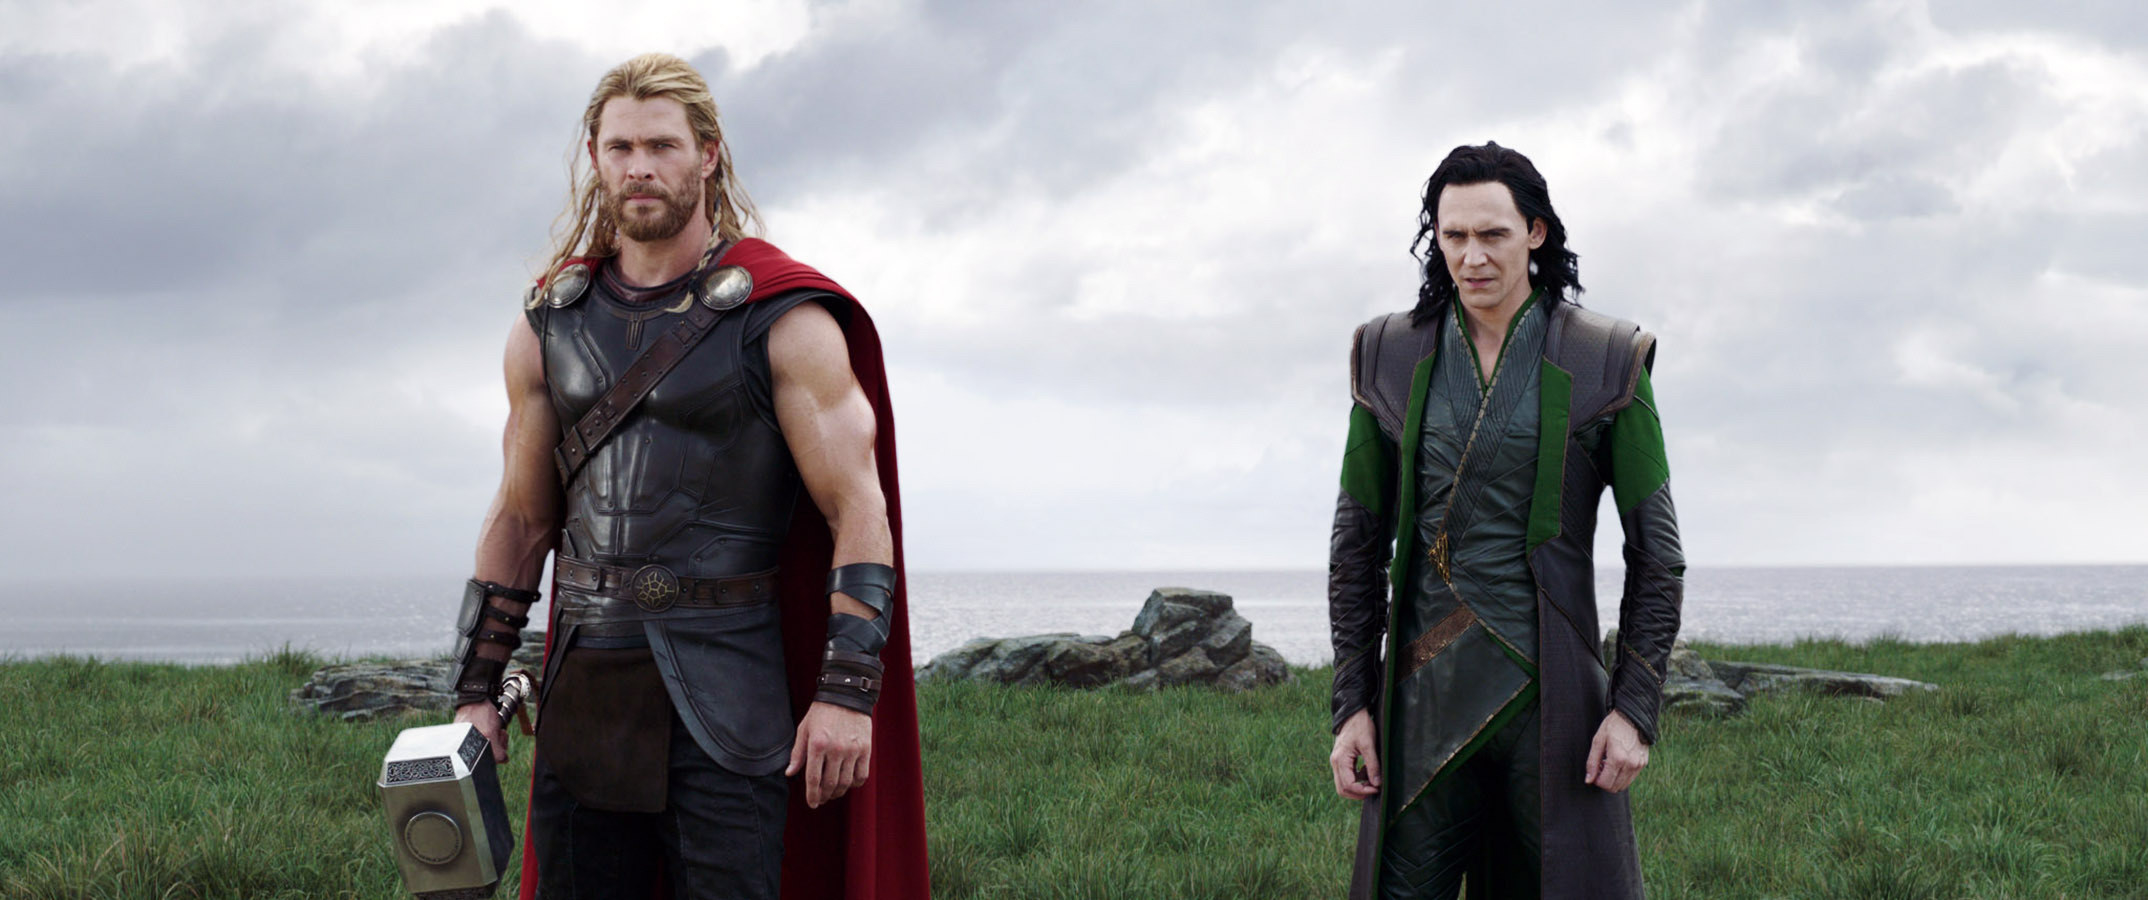 Thor and Loki stand in a field